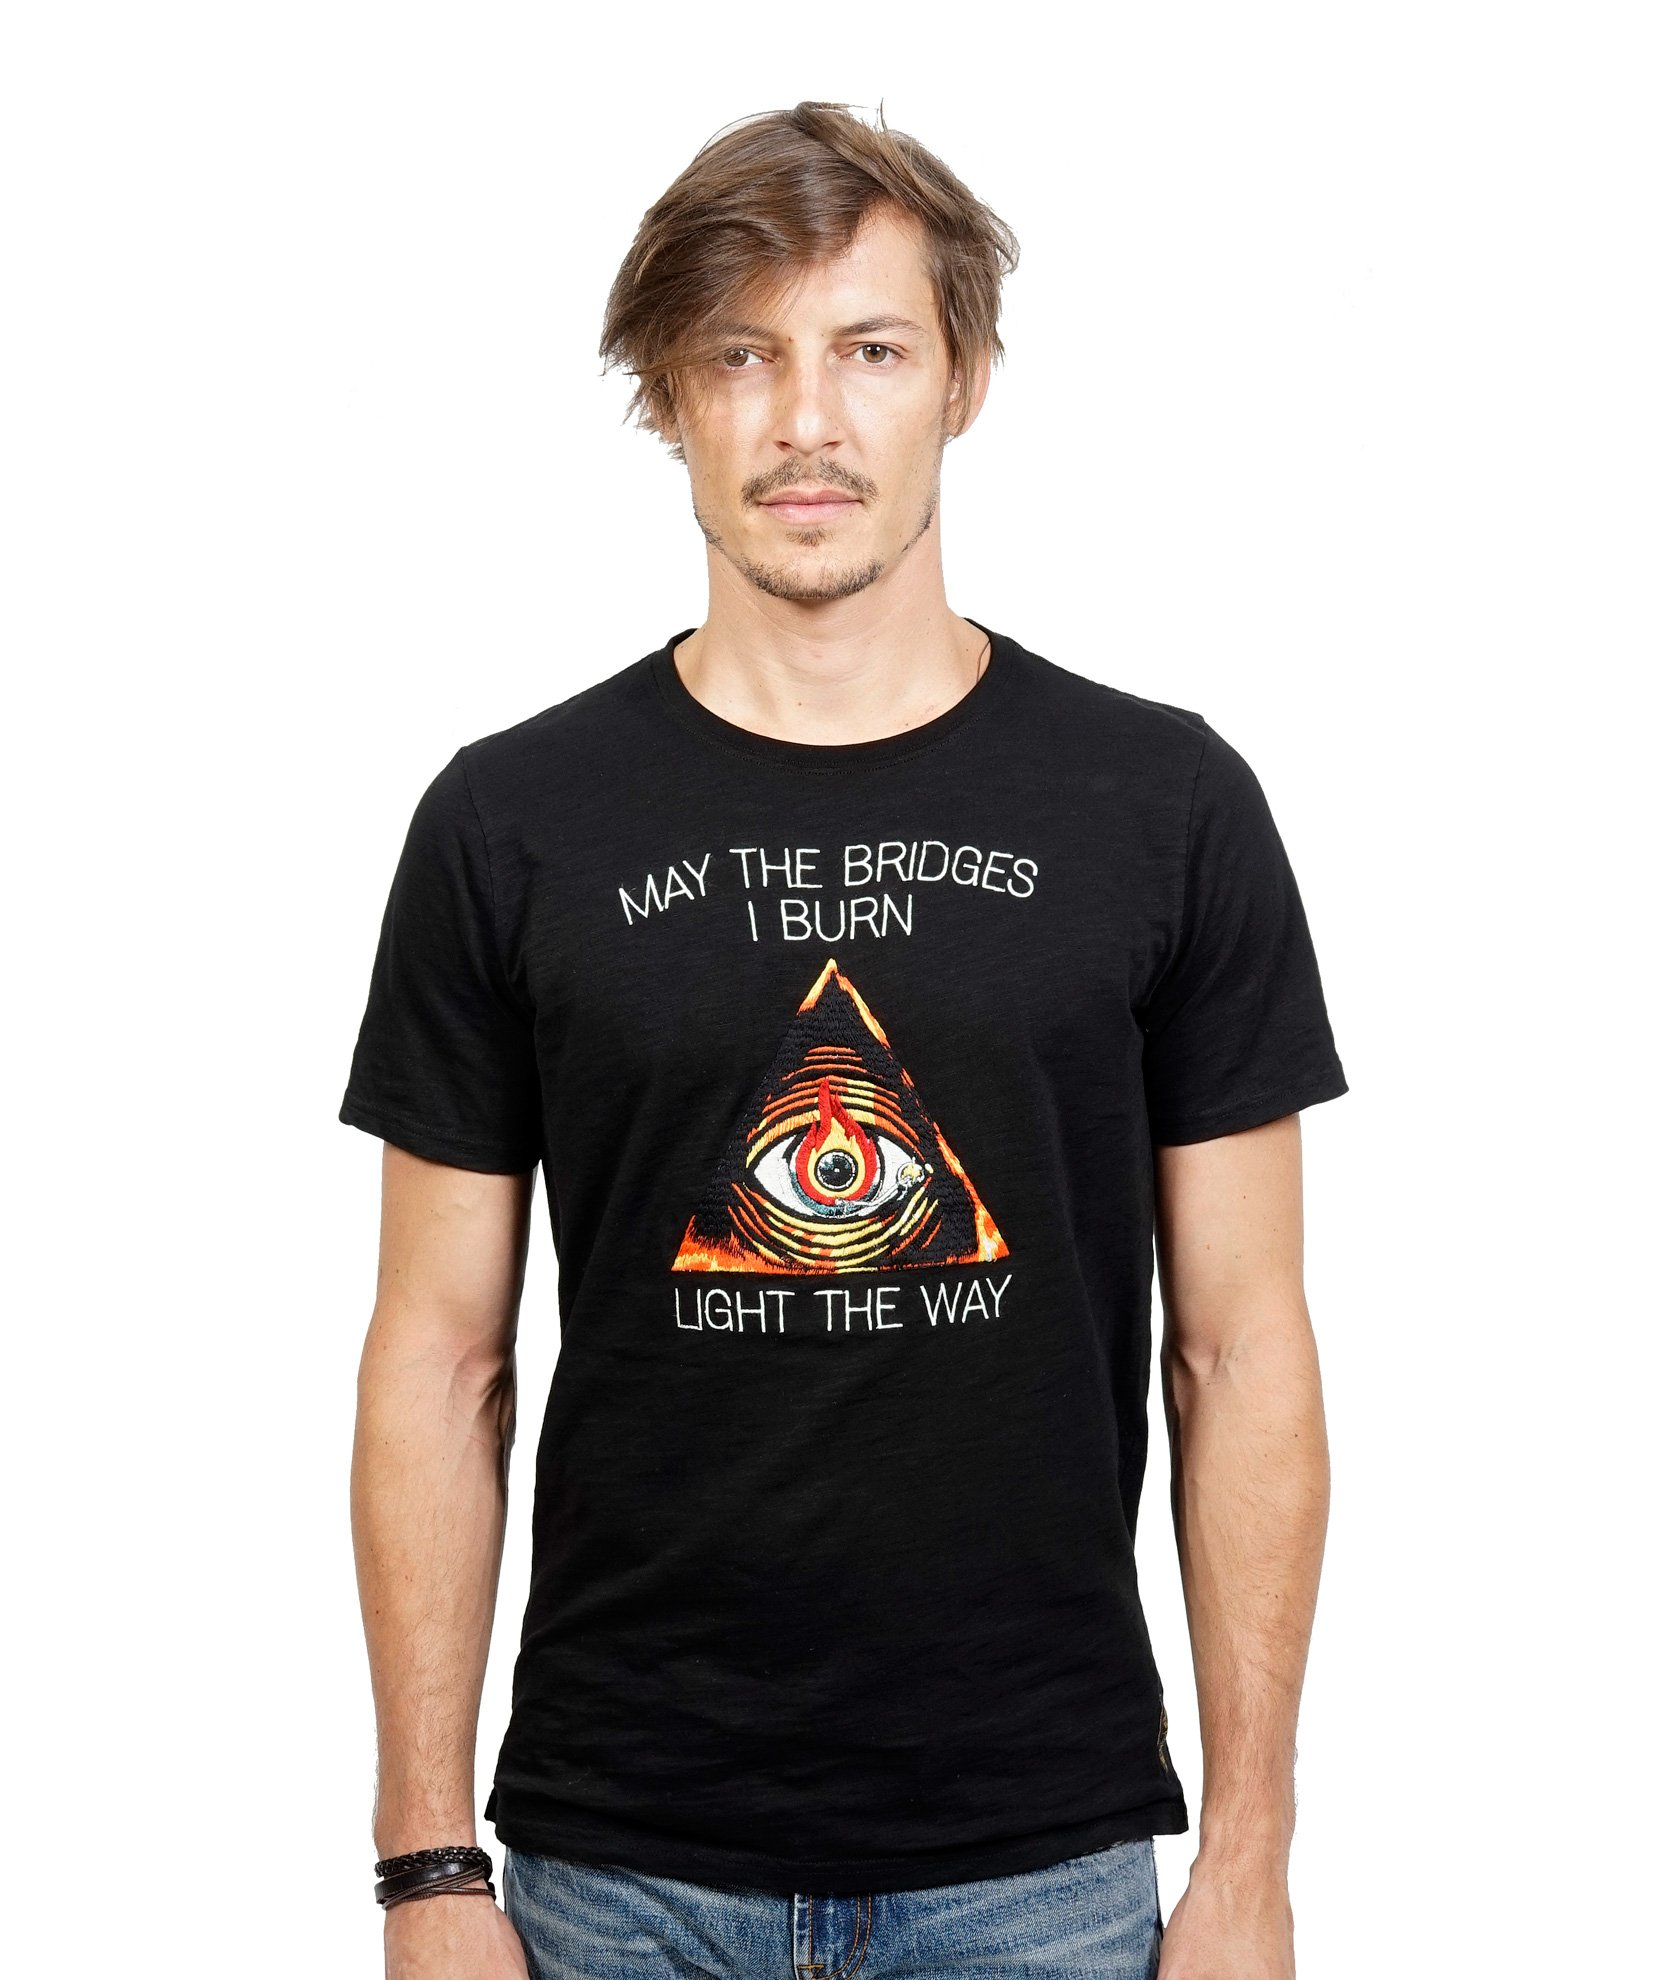 Light The Way Embriodered Tee in Black